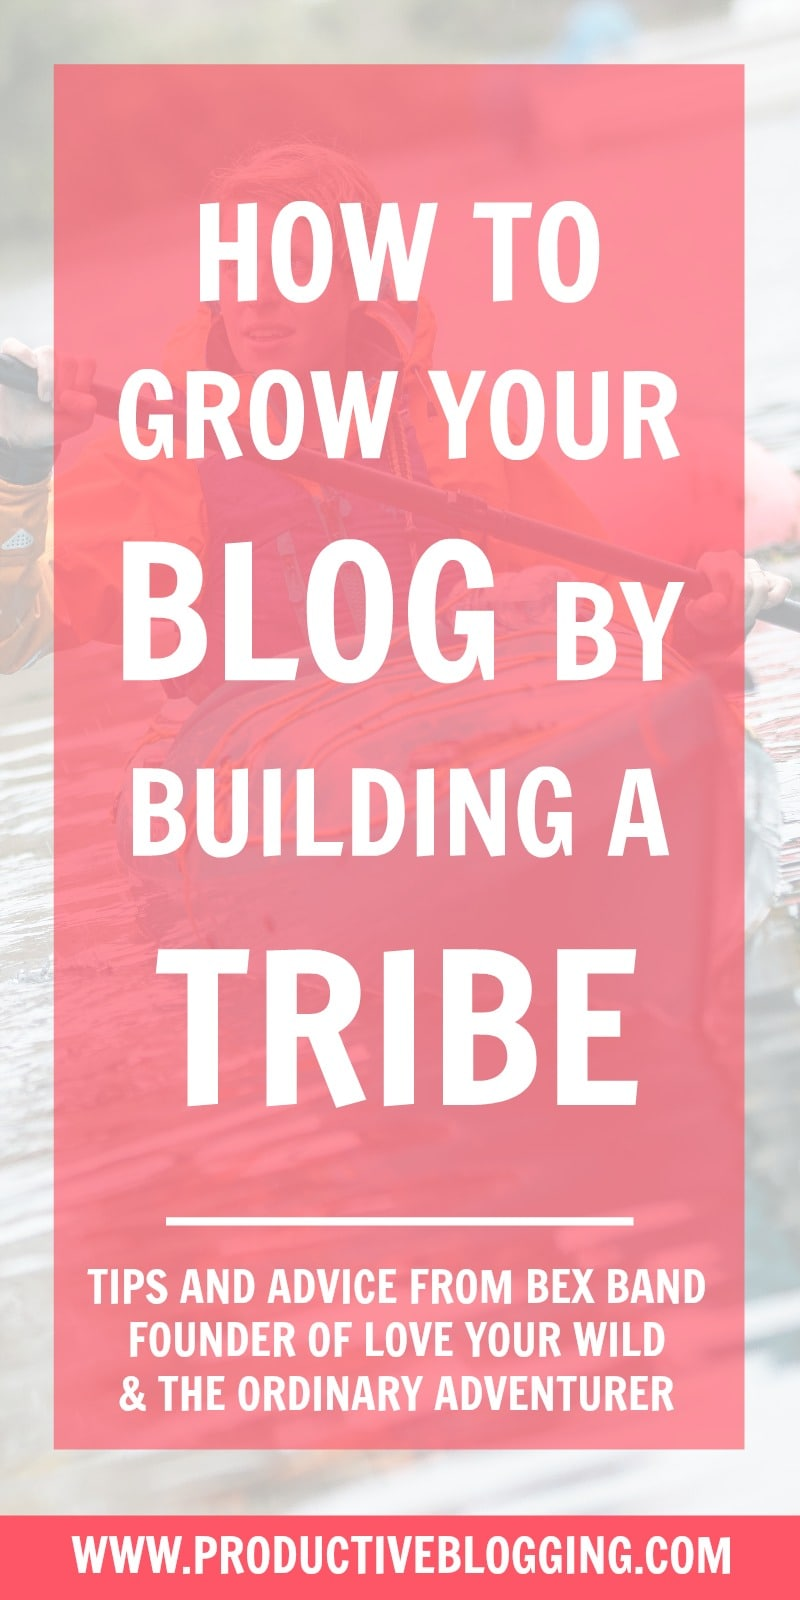 What exactly is a tribe? And how can building one help you grow your blog? Bex Band, adventure blogger at The Ordinary Adventurer (www.theordinaryadventurer.com) and founder of the women's adventure community Love Her Wild (www.loveherwild.com), explains how you can grow your blog by building a tribe… #bexband #theordinaryadventurer #loveherwild #tribe #buildatribe #buildyourtribe #tribebuilding #growyourblog #bloggrowth #solopreneur #blog #blogging #blogger #bloggingtips #productiveblogging